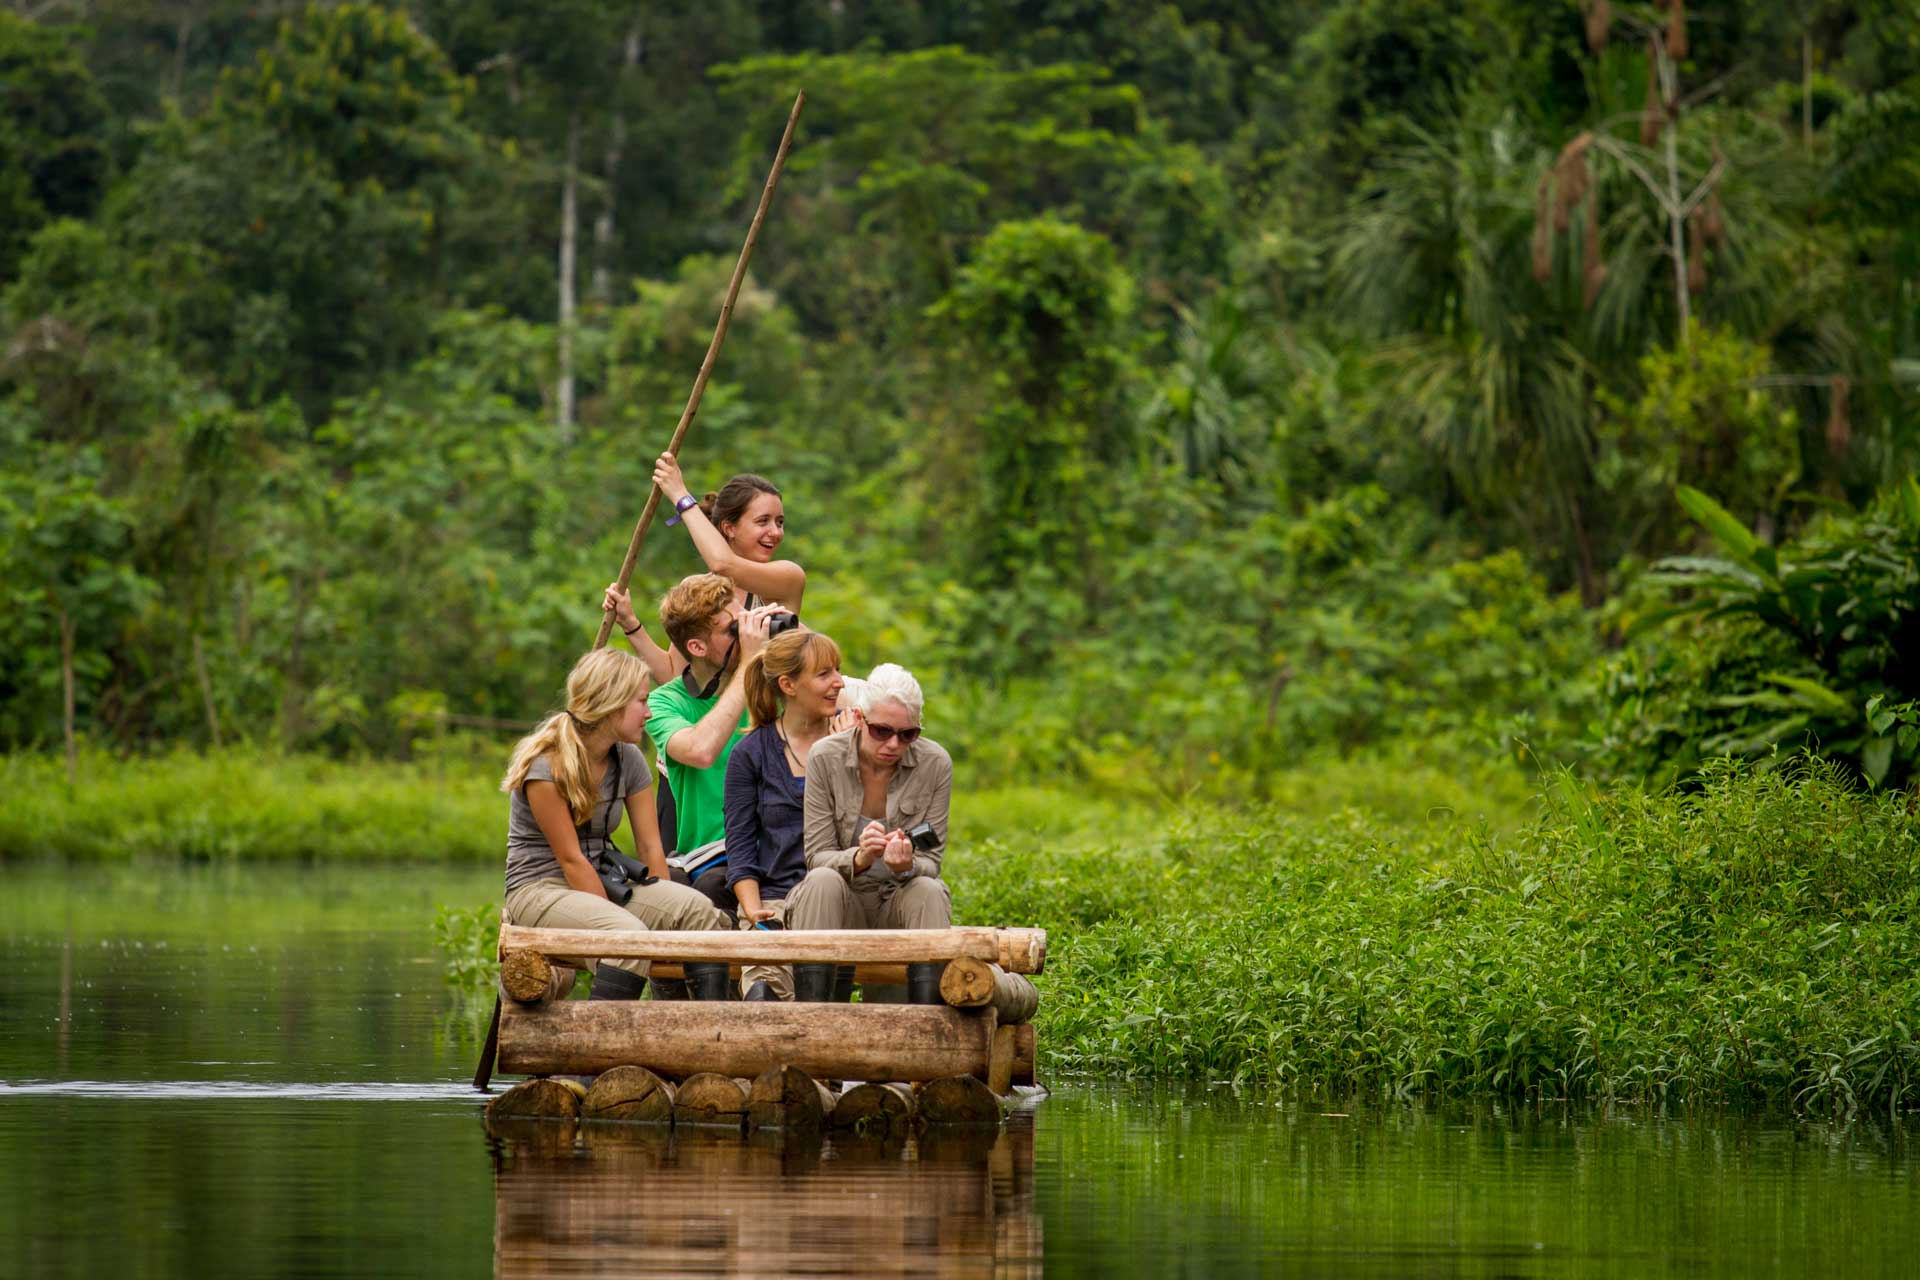 https://www.globalteer.org/wp-content/uploads/2018/04/Volunteer-work-in-the-Peruvian-Amazon.jpg